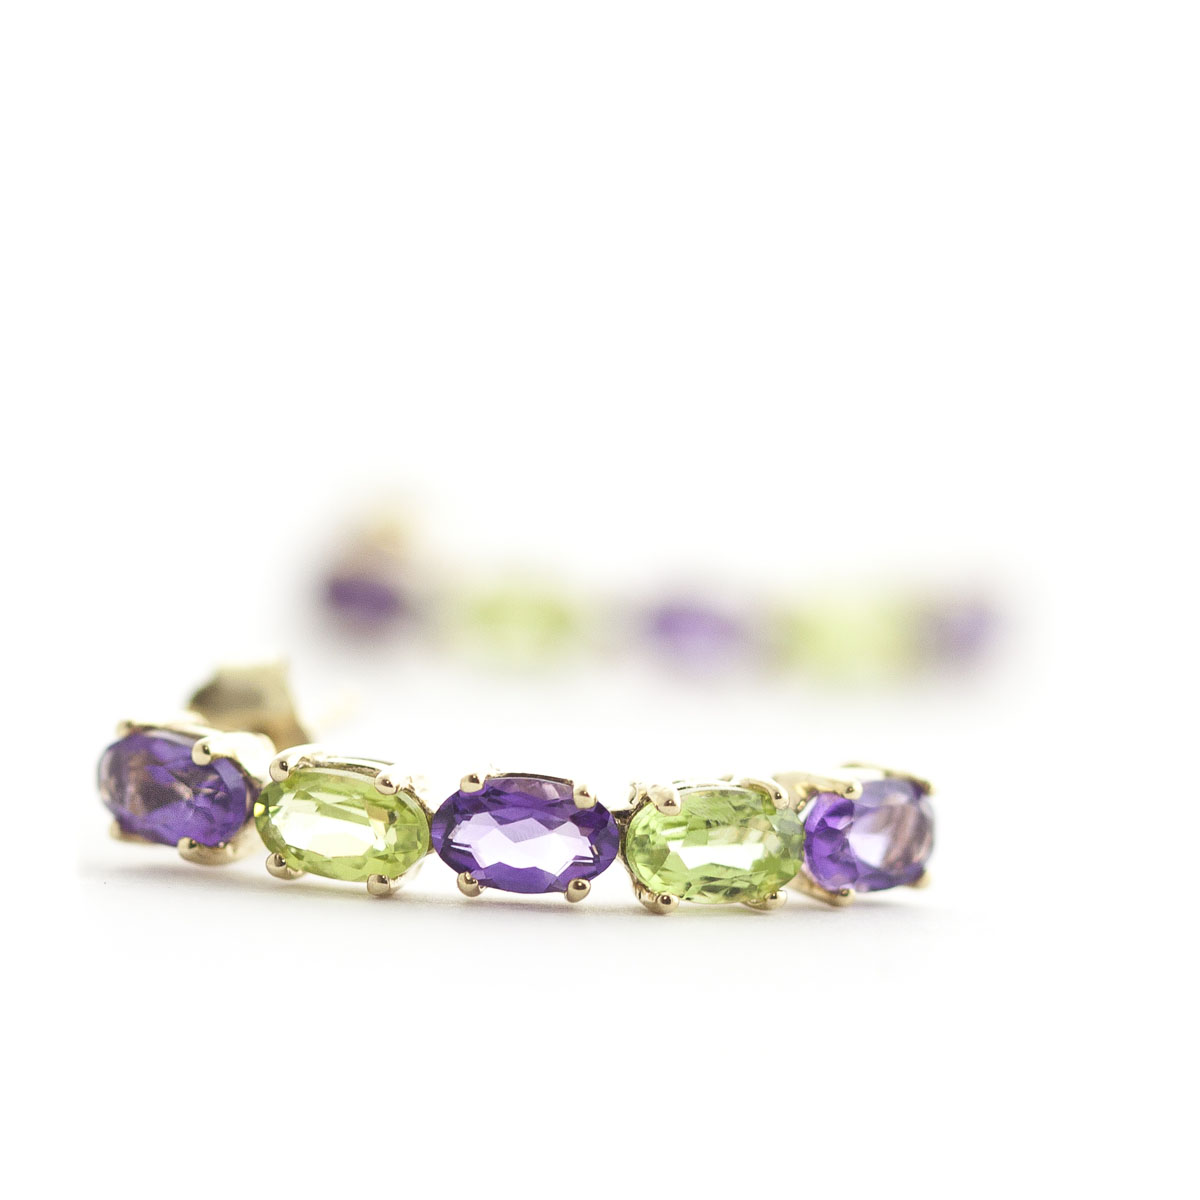 Amethyst & Peridot Linear Stud Earrings in 9ct Gold